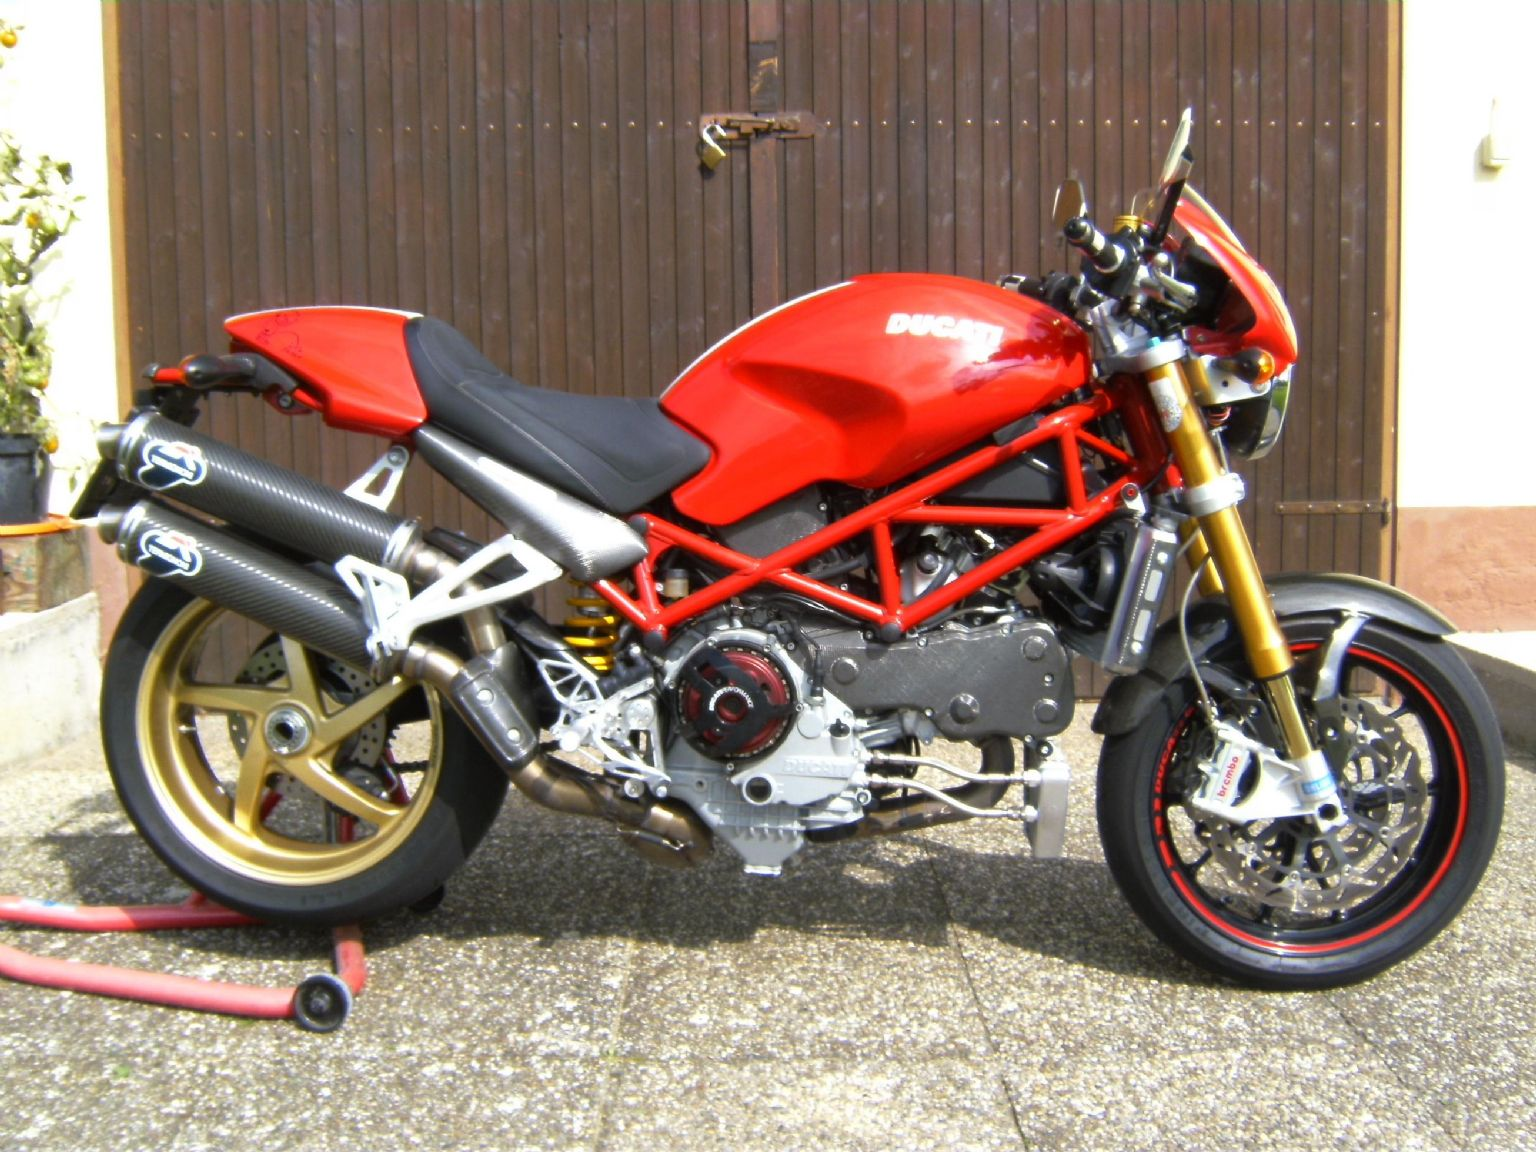 umgebautes motorrad ducati monster s4rs von klausrieder. Black Bedroom Furniture Sets. Home Design Ideas